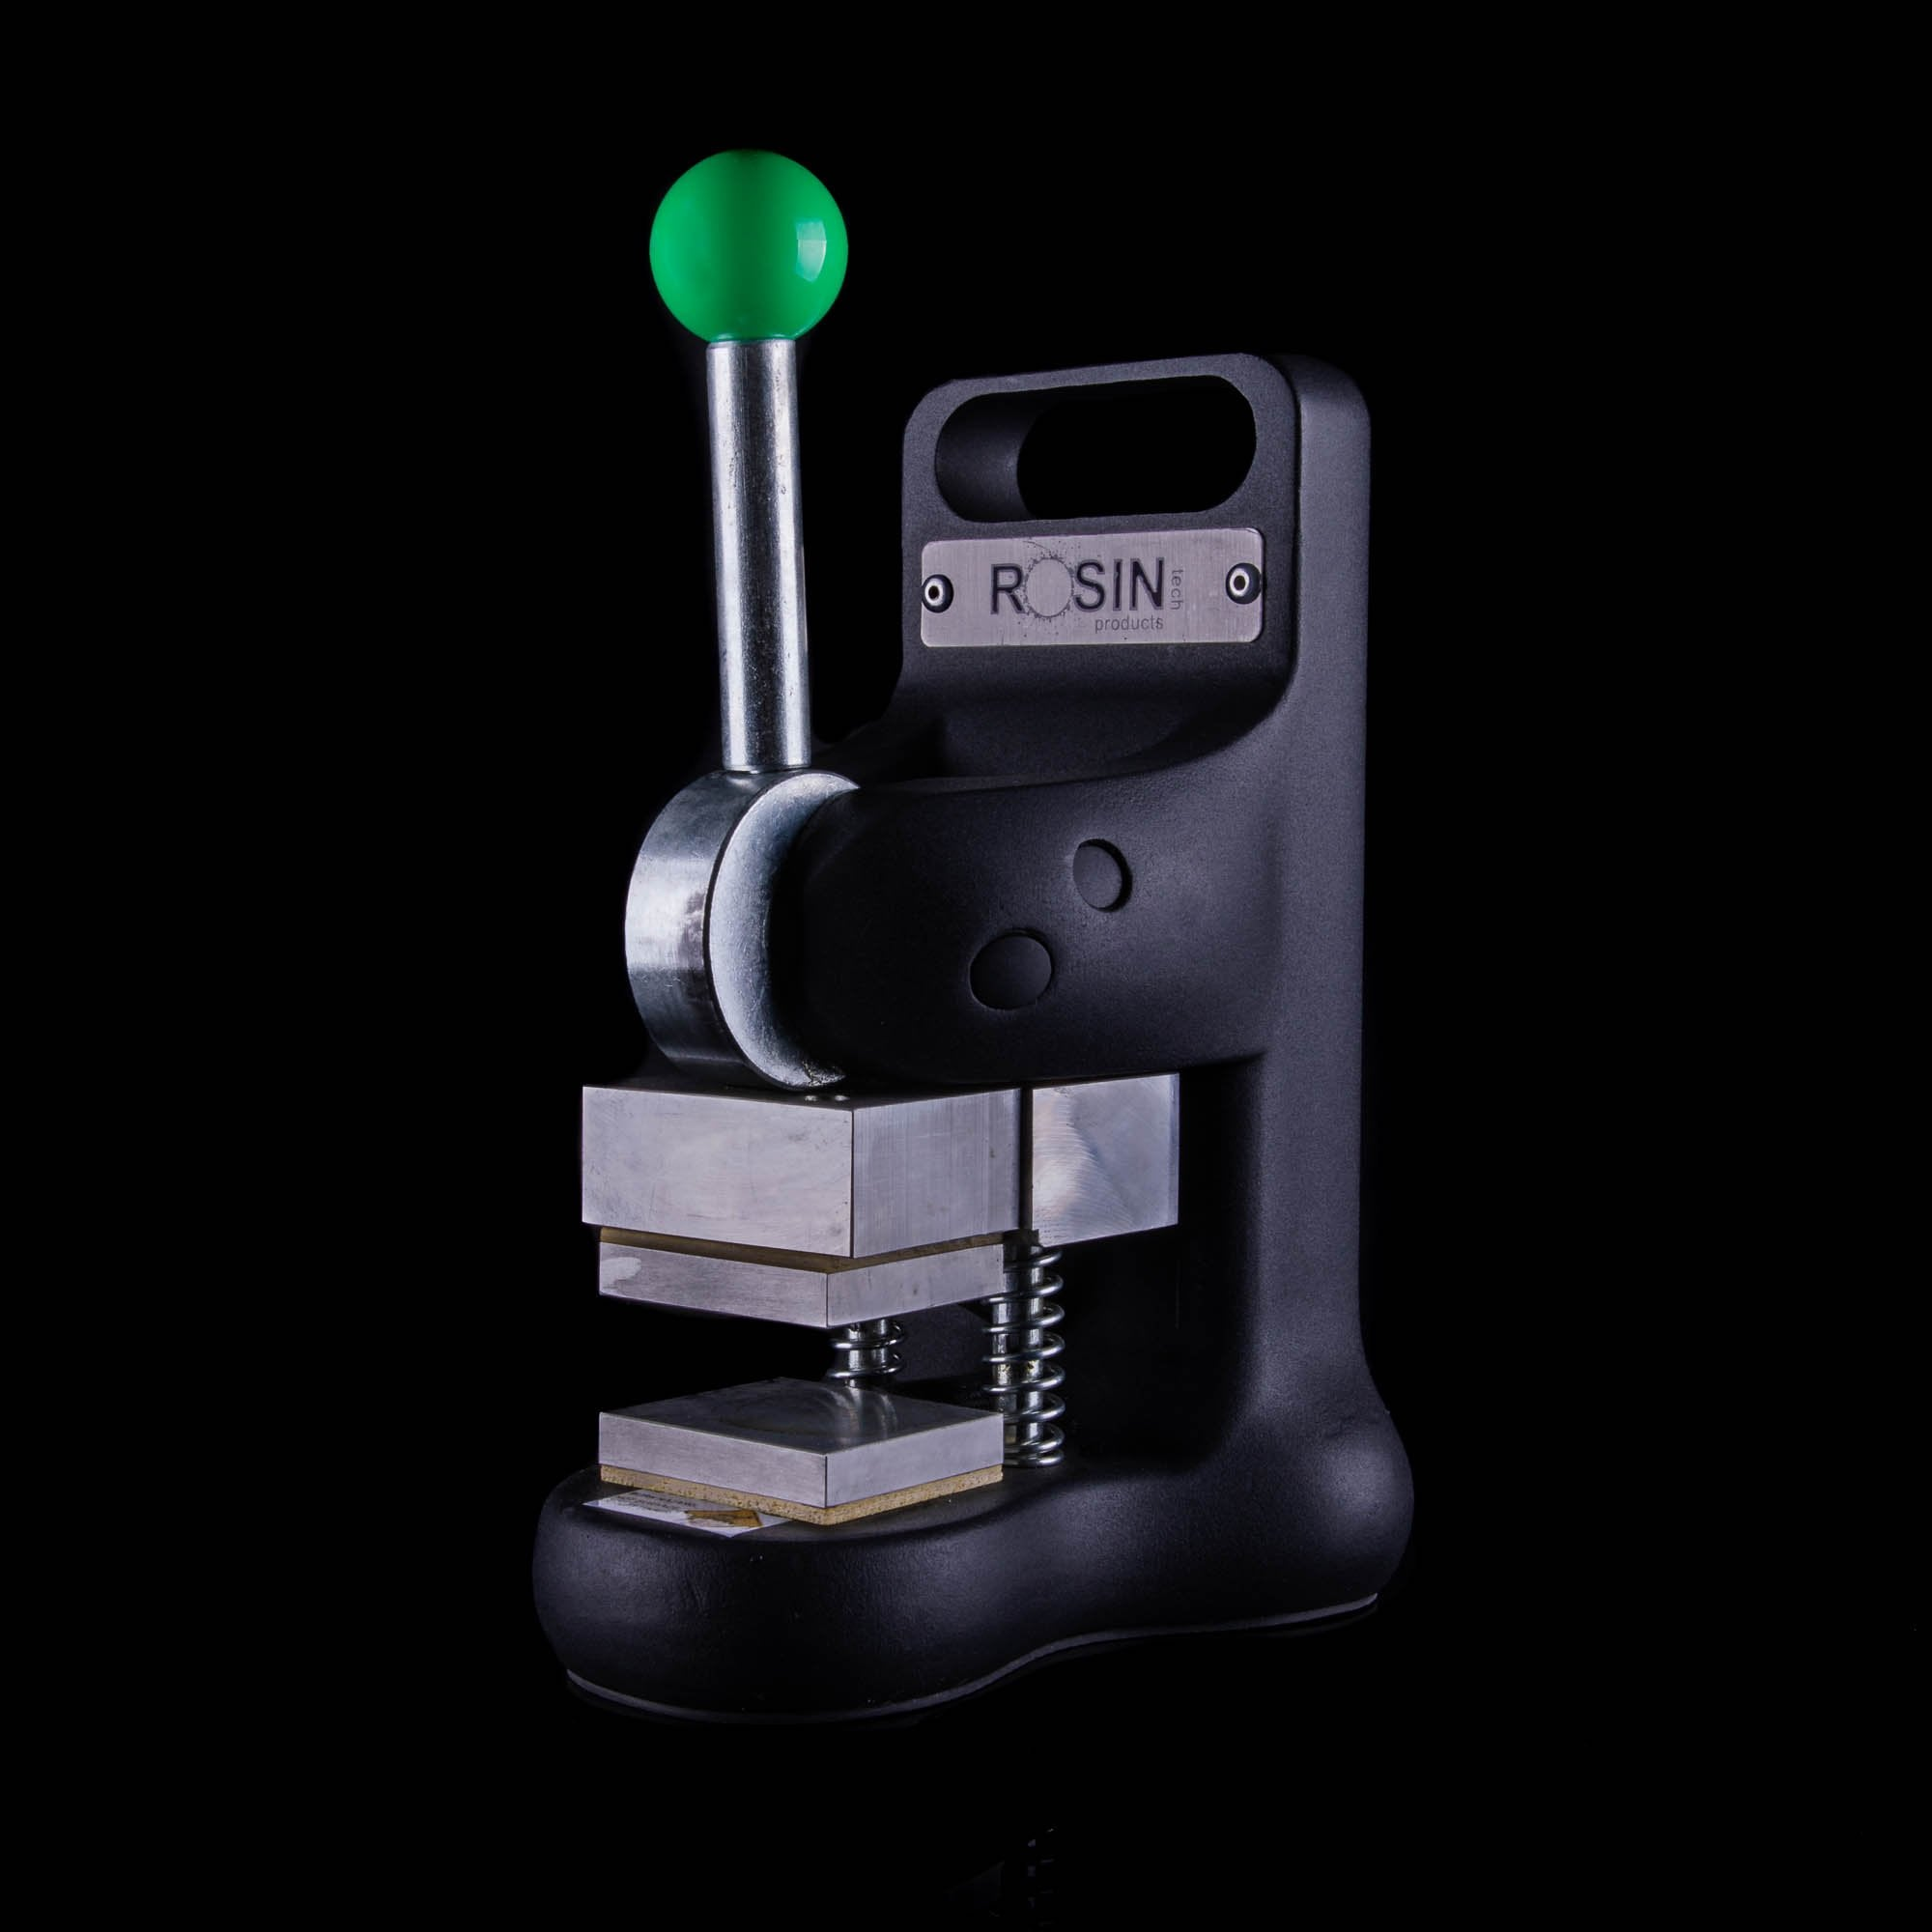 rosin tech go 2 portable rosin press offers intuitive controls perfect for beginners